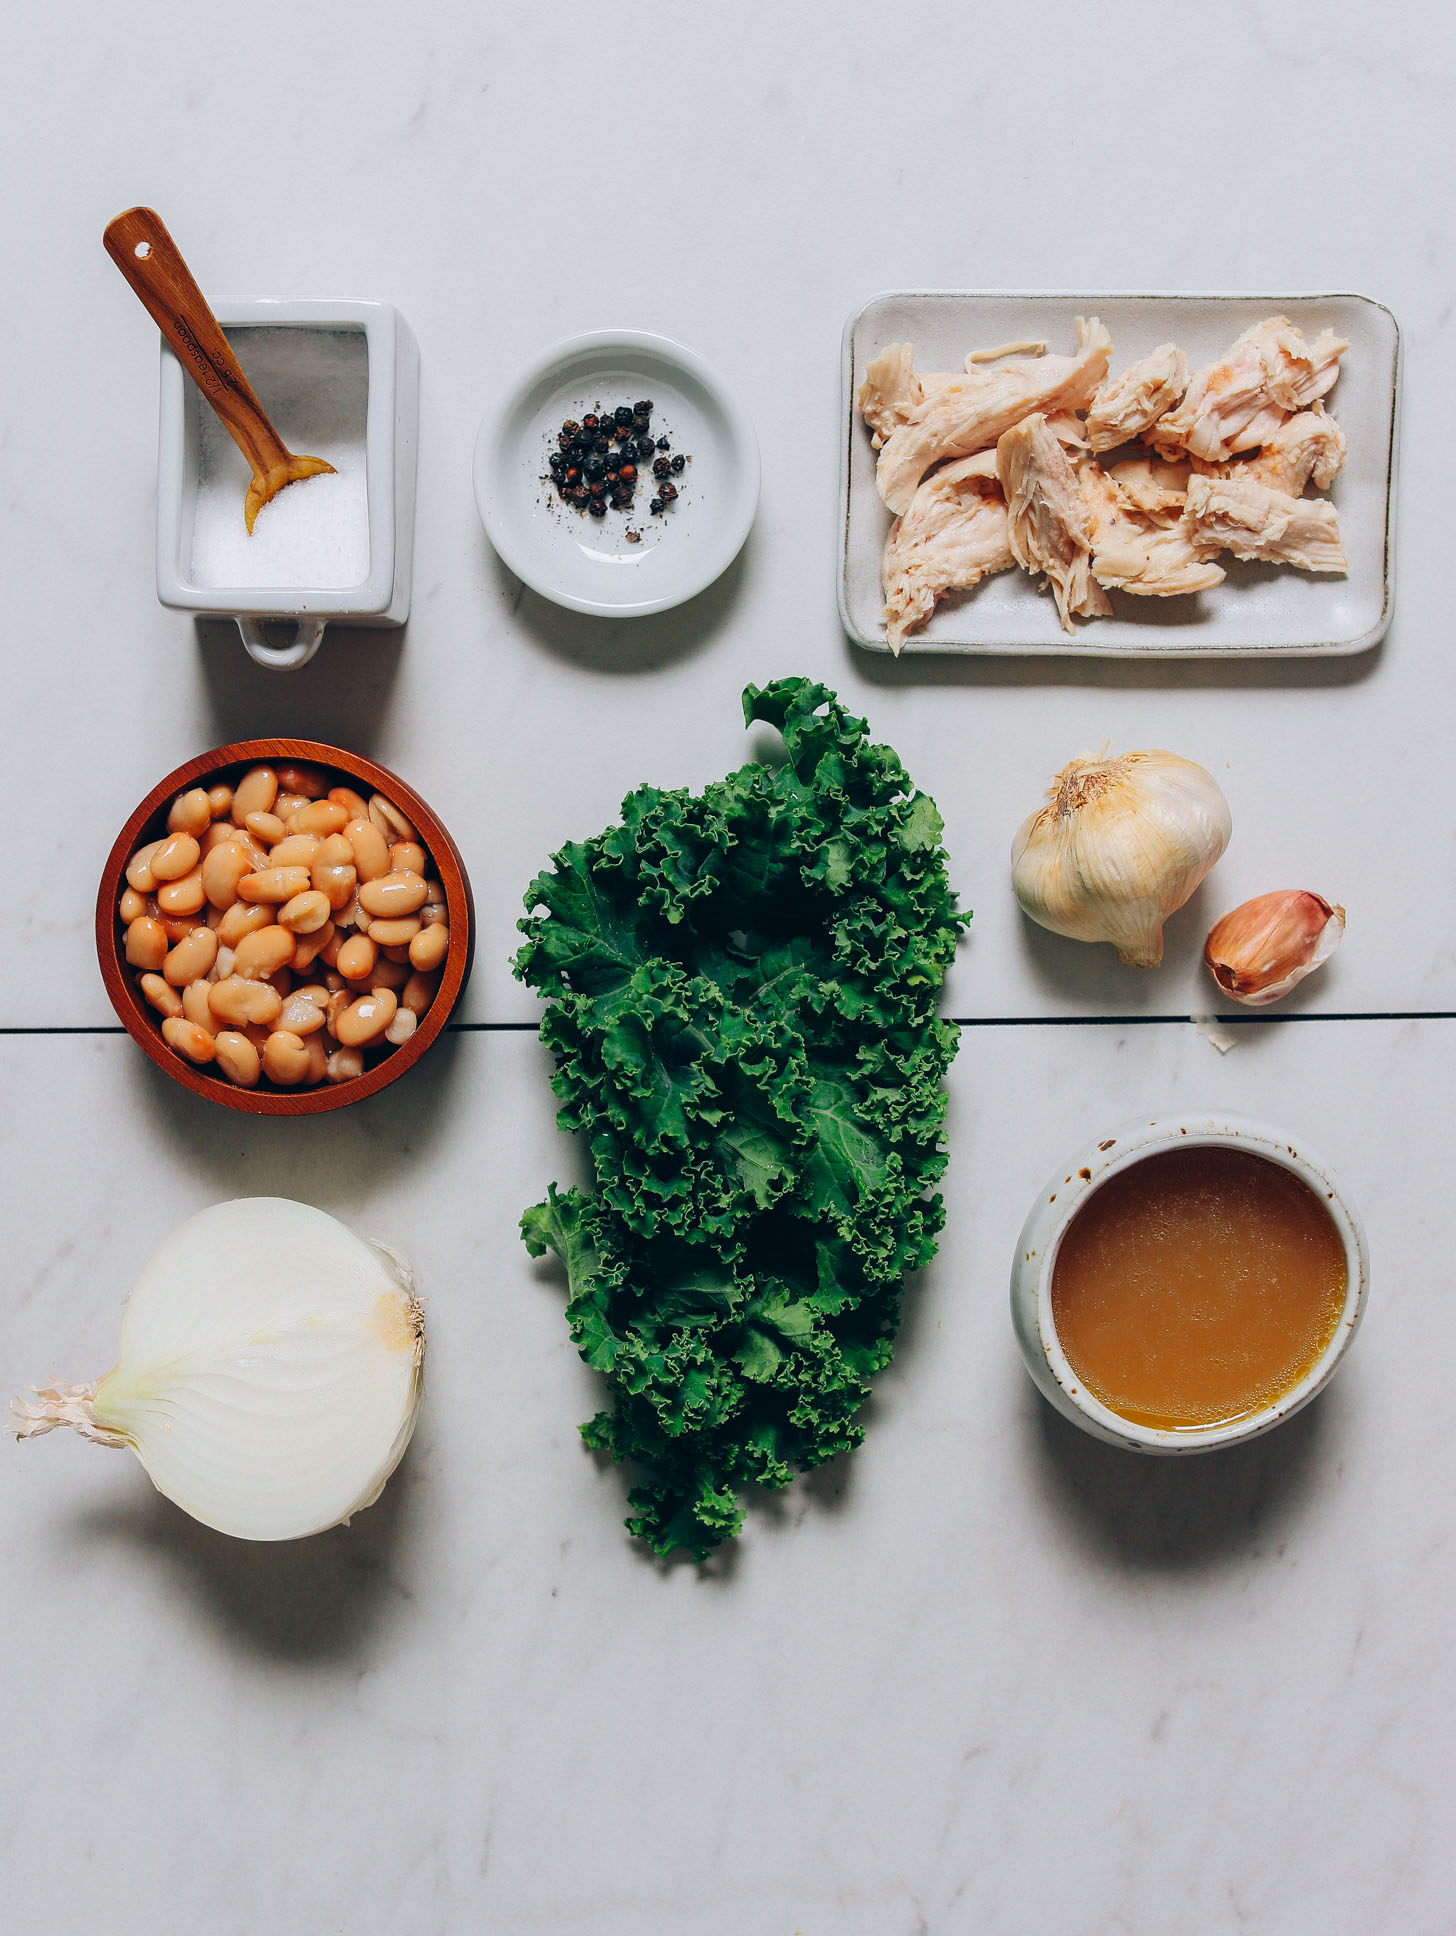 Ingredients for making our Kale White Bean Chicken Soup recipe